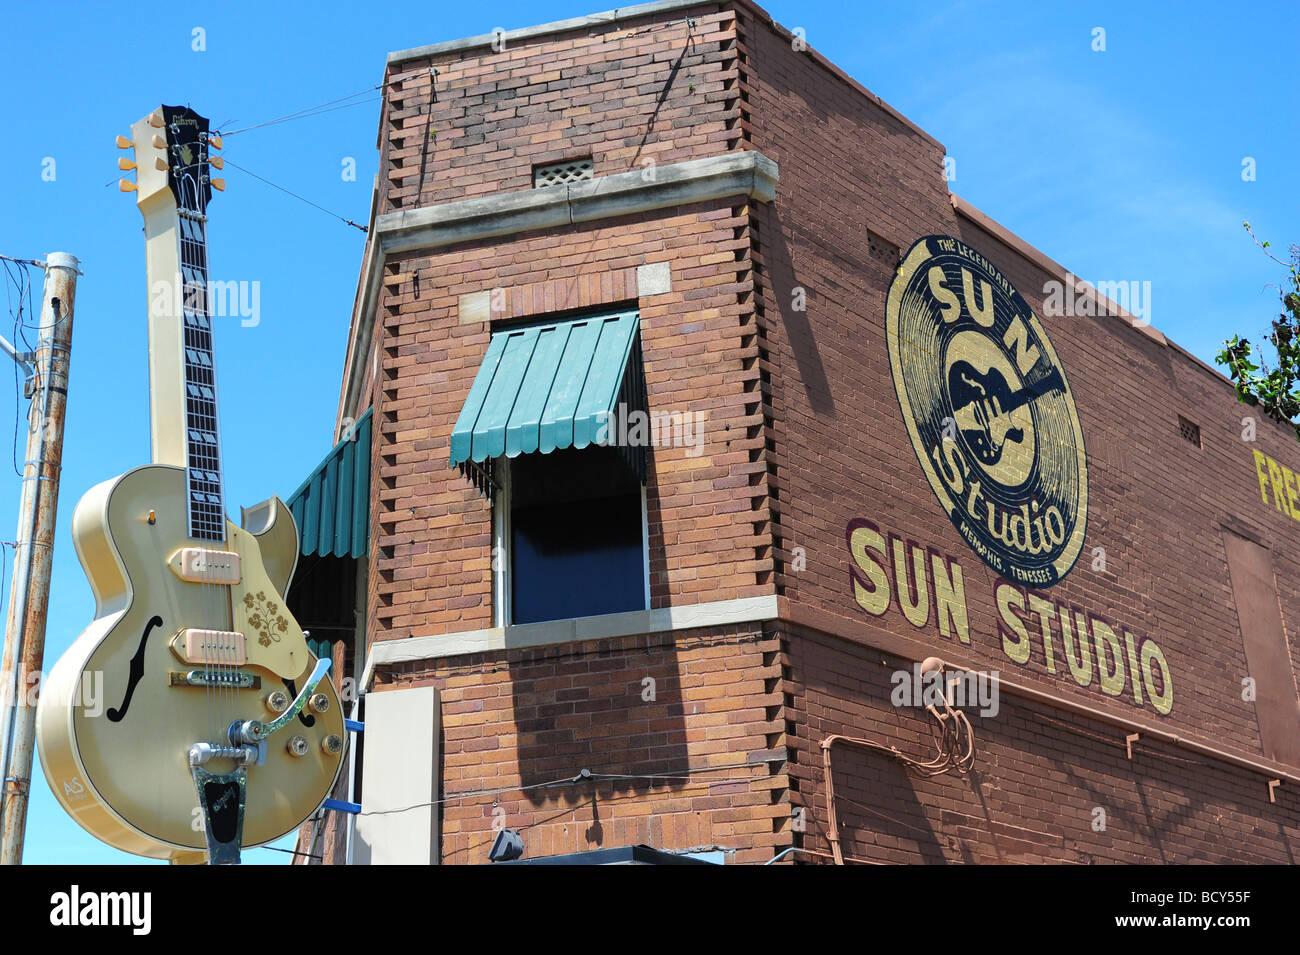 tennessee-memphis-sun-studio-exterior-where-elvis-presley-recorded-BCY55F.jpg